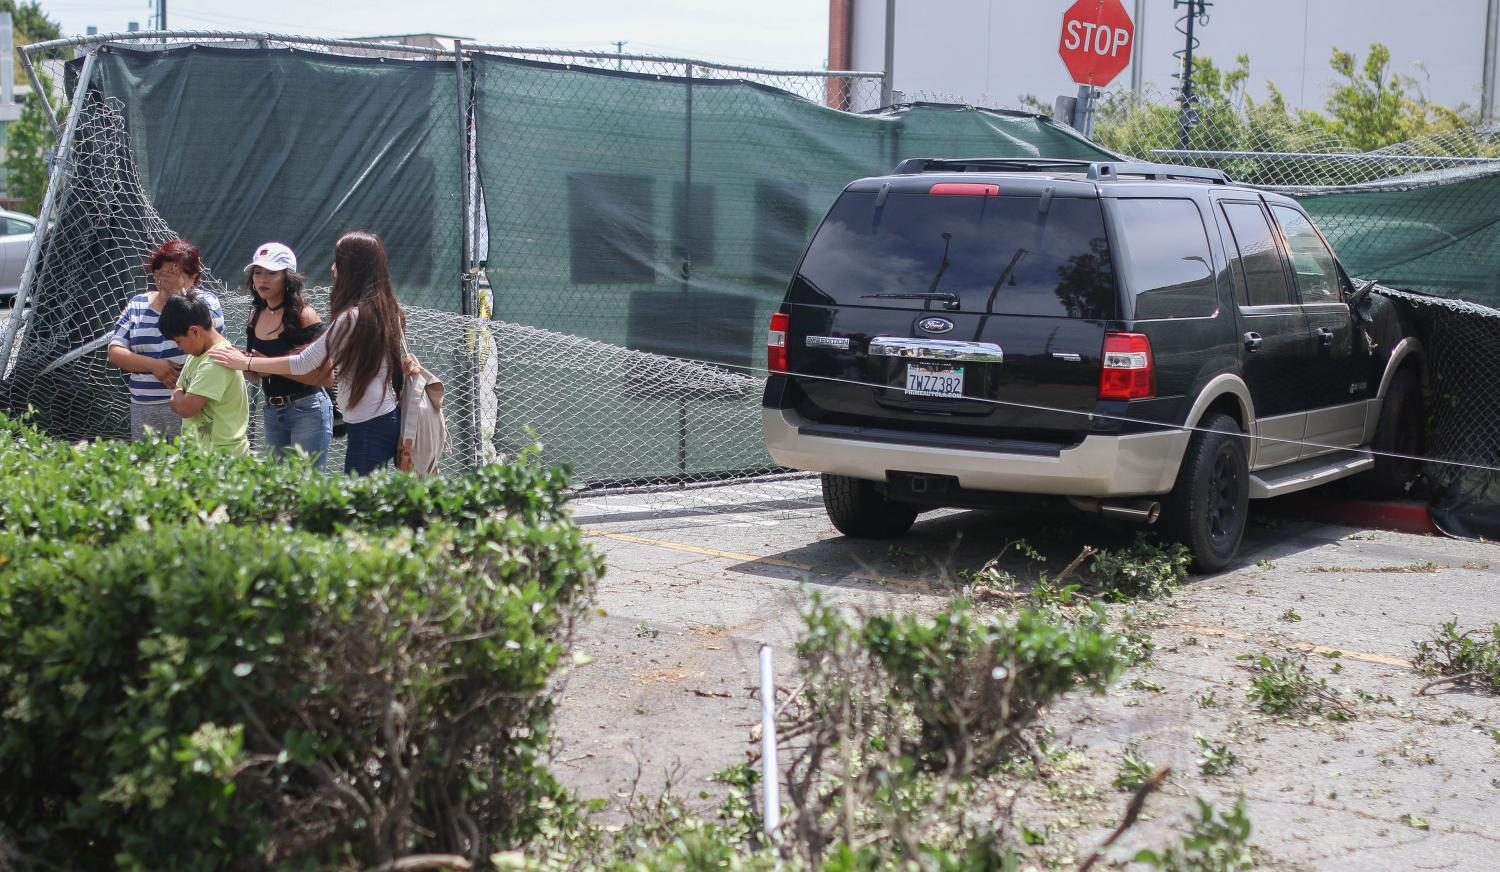 The driver of the Ford Expedition lost control crashing into the construction site near Lot B after colliding onto another vehicle driving east bound of Manhattan beach Blvd. around 12:30 p.m. on Tuesday April, 25. The drivers of both the vehicles were given medical attention, except for the passengers of the Ford expedition who were not harmed.